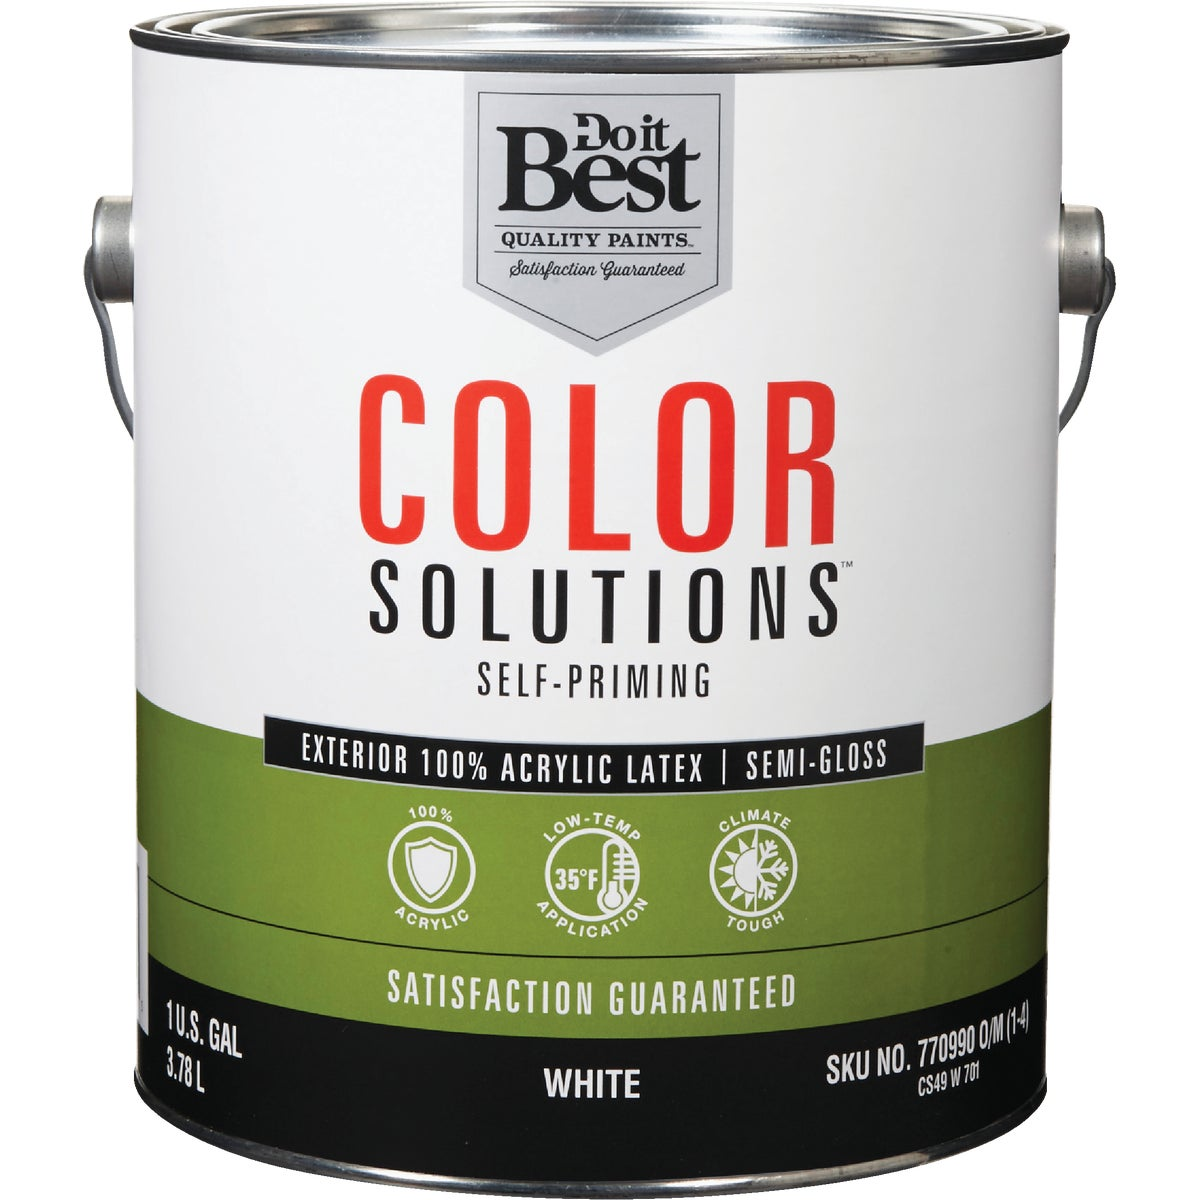 EXT S/G WHITE PAINT - CS49W0701-16 by Do it Best